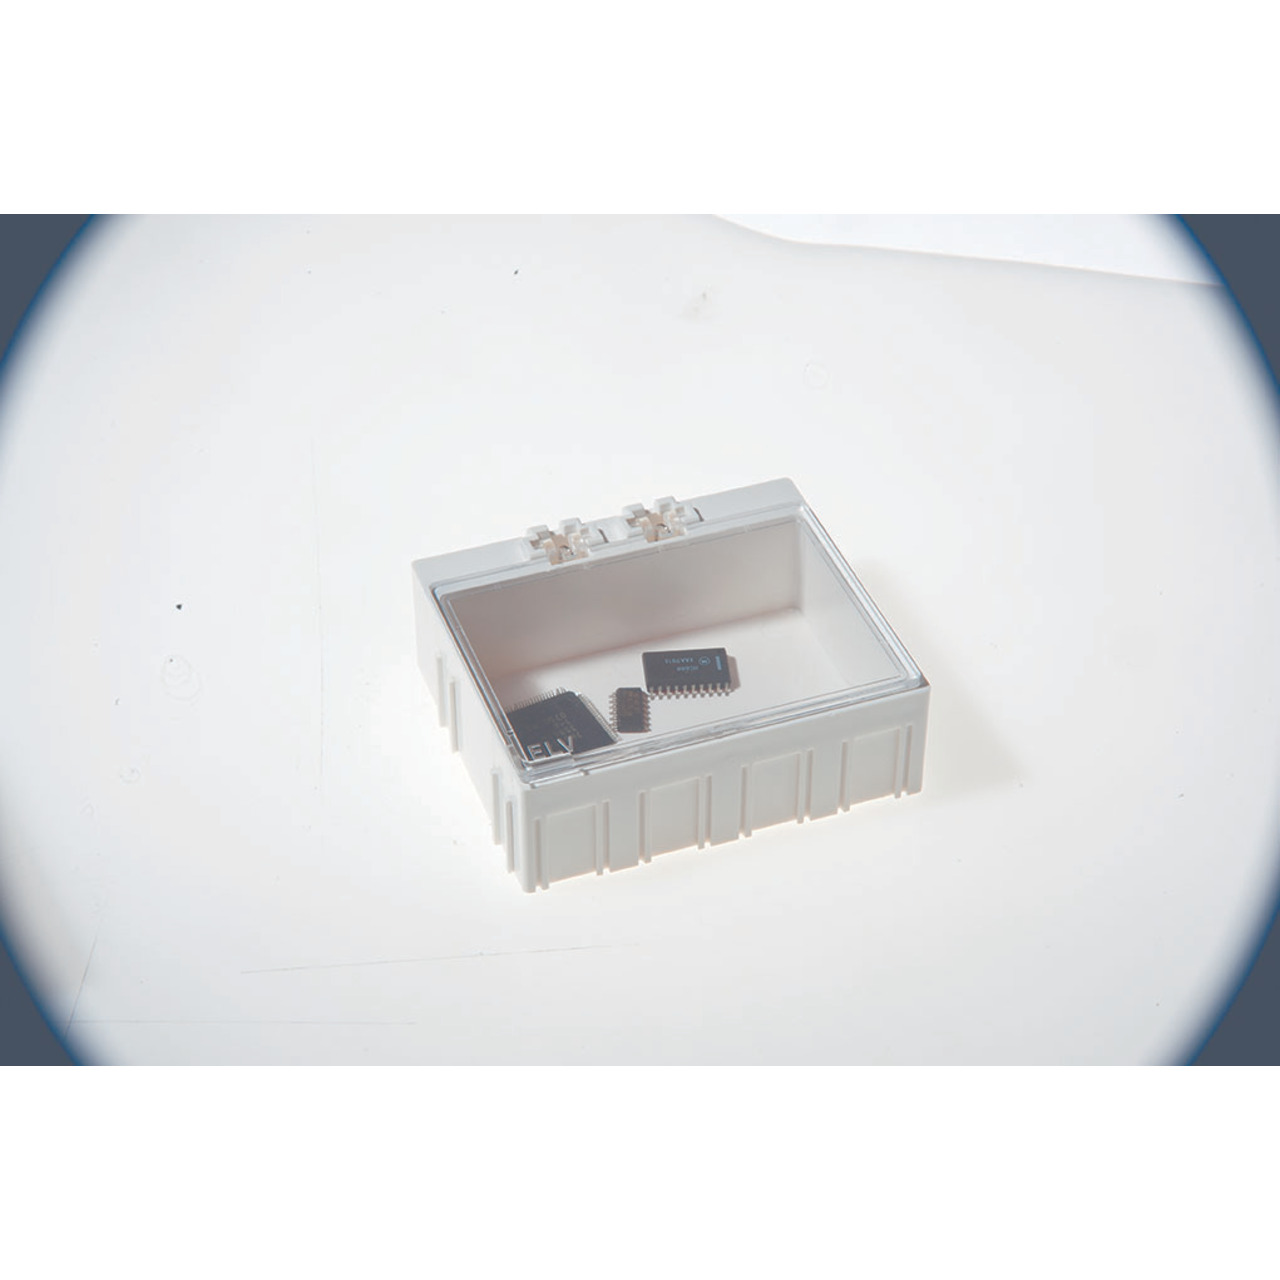 ELV 10er-Set SMD-Sortierbox- Altweiss- 23 x 62 x 54 mm